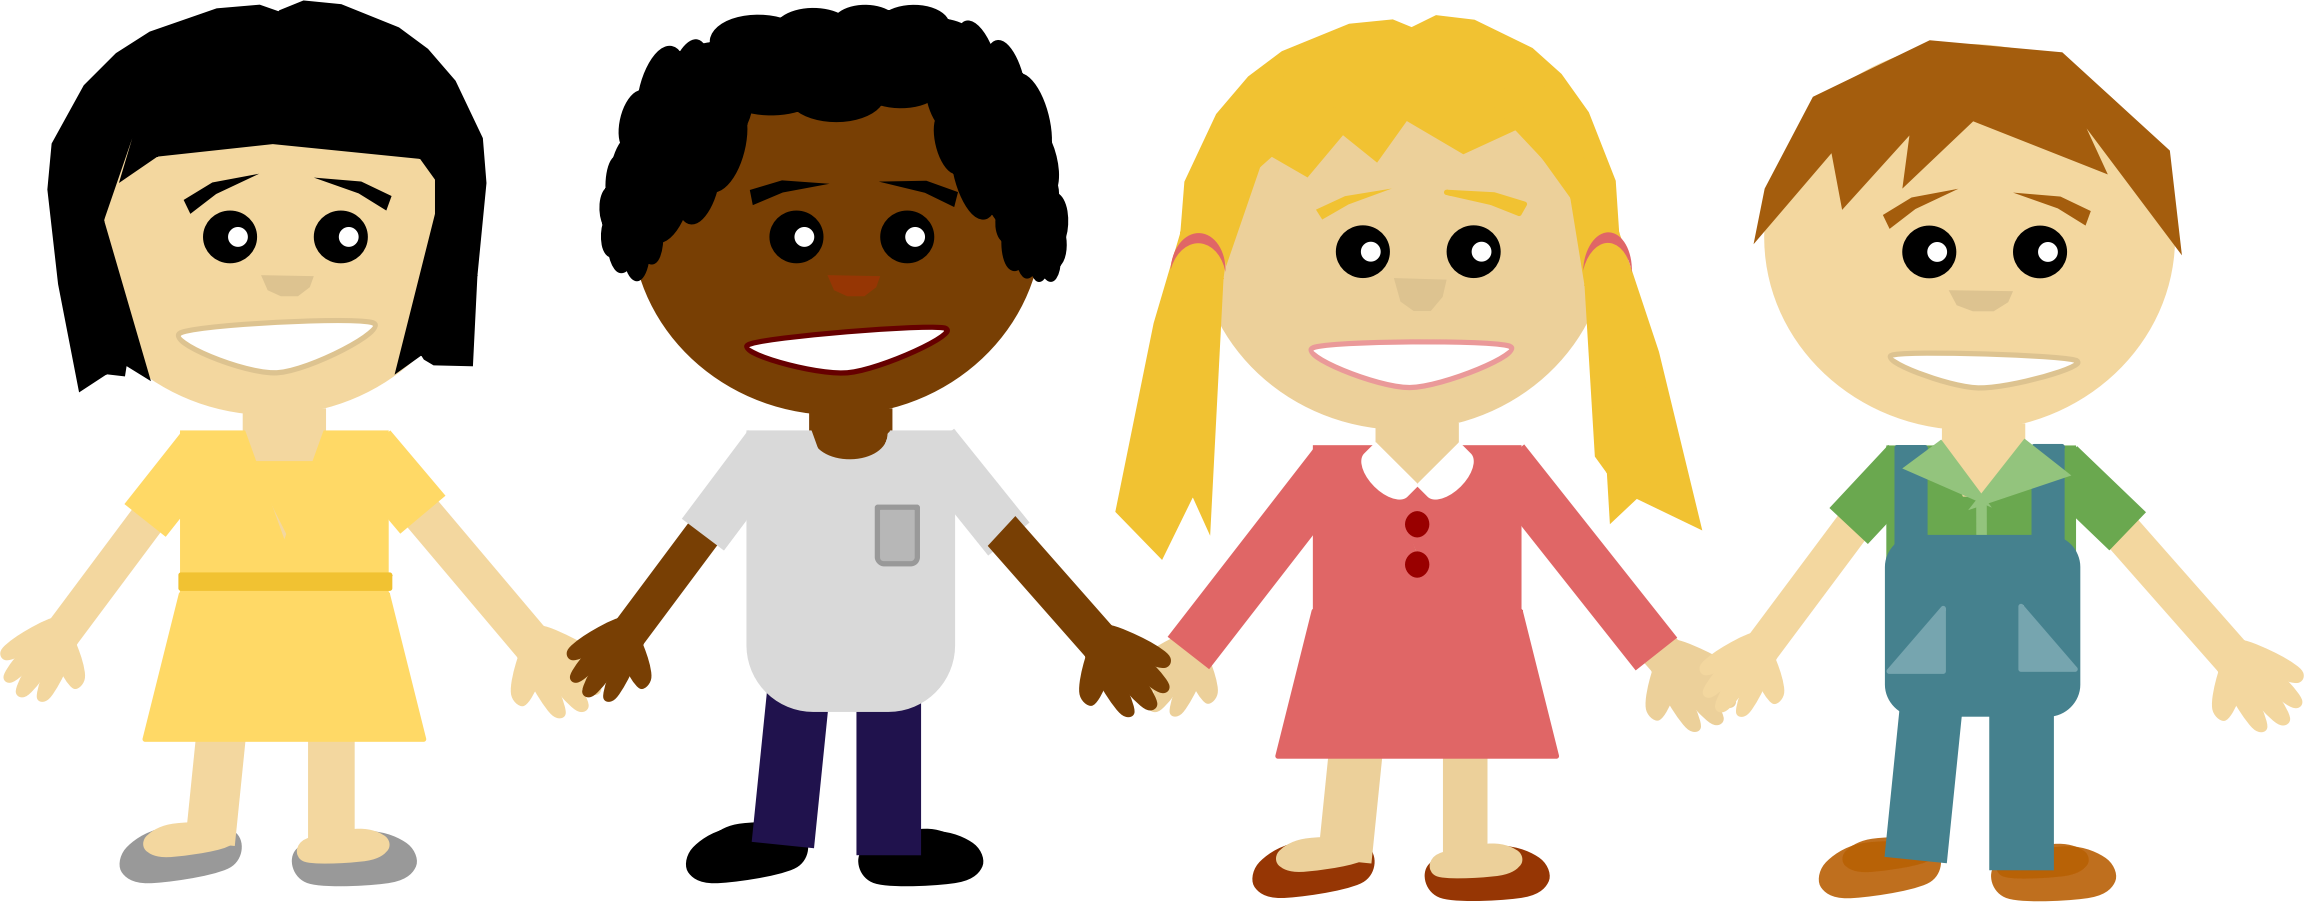 Children holding hands by Carlene